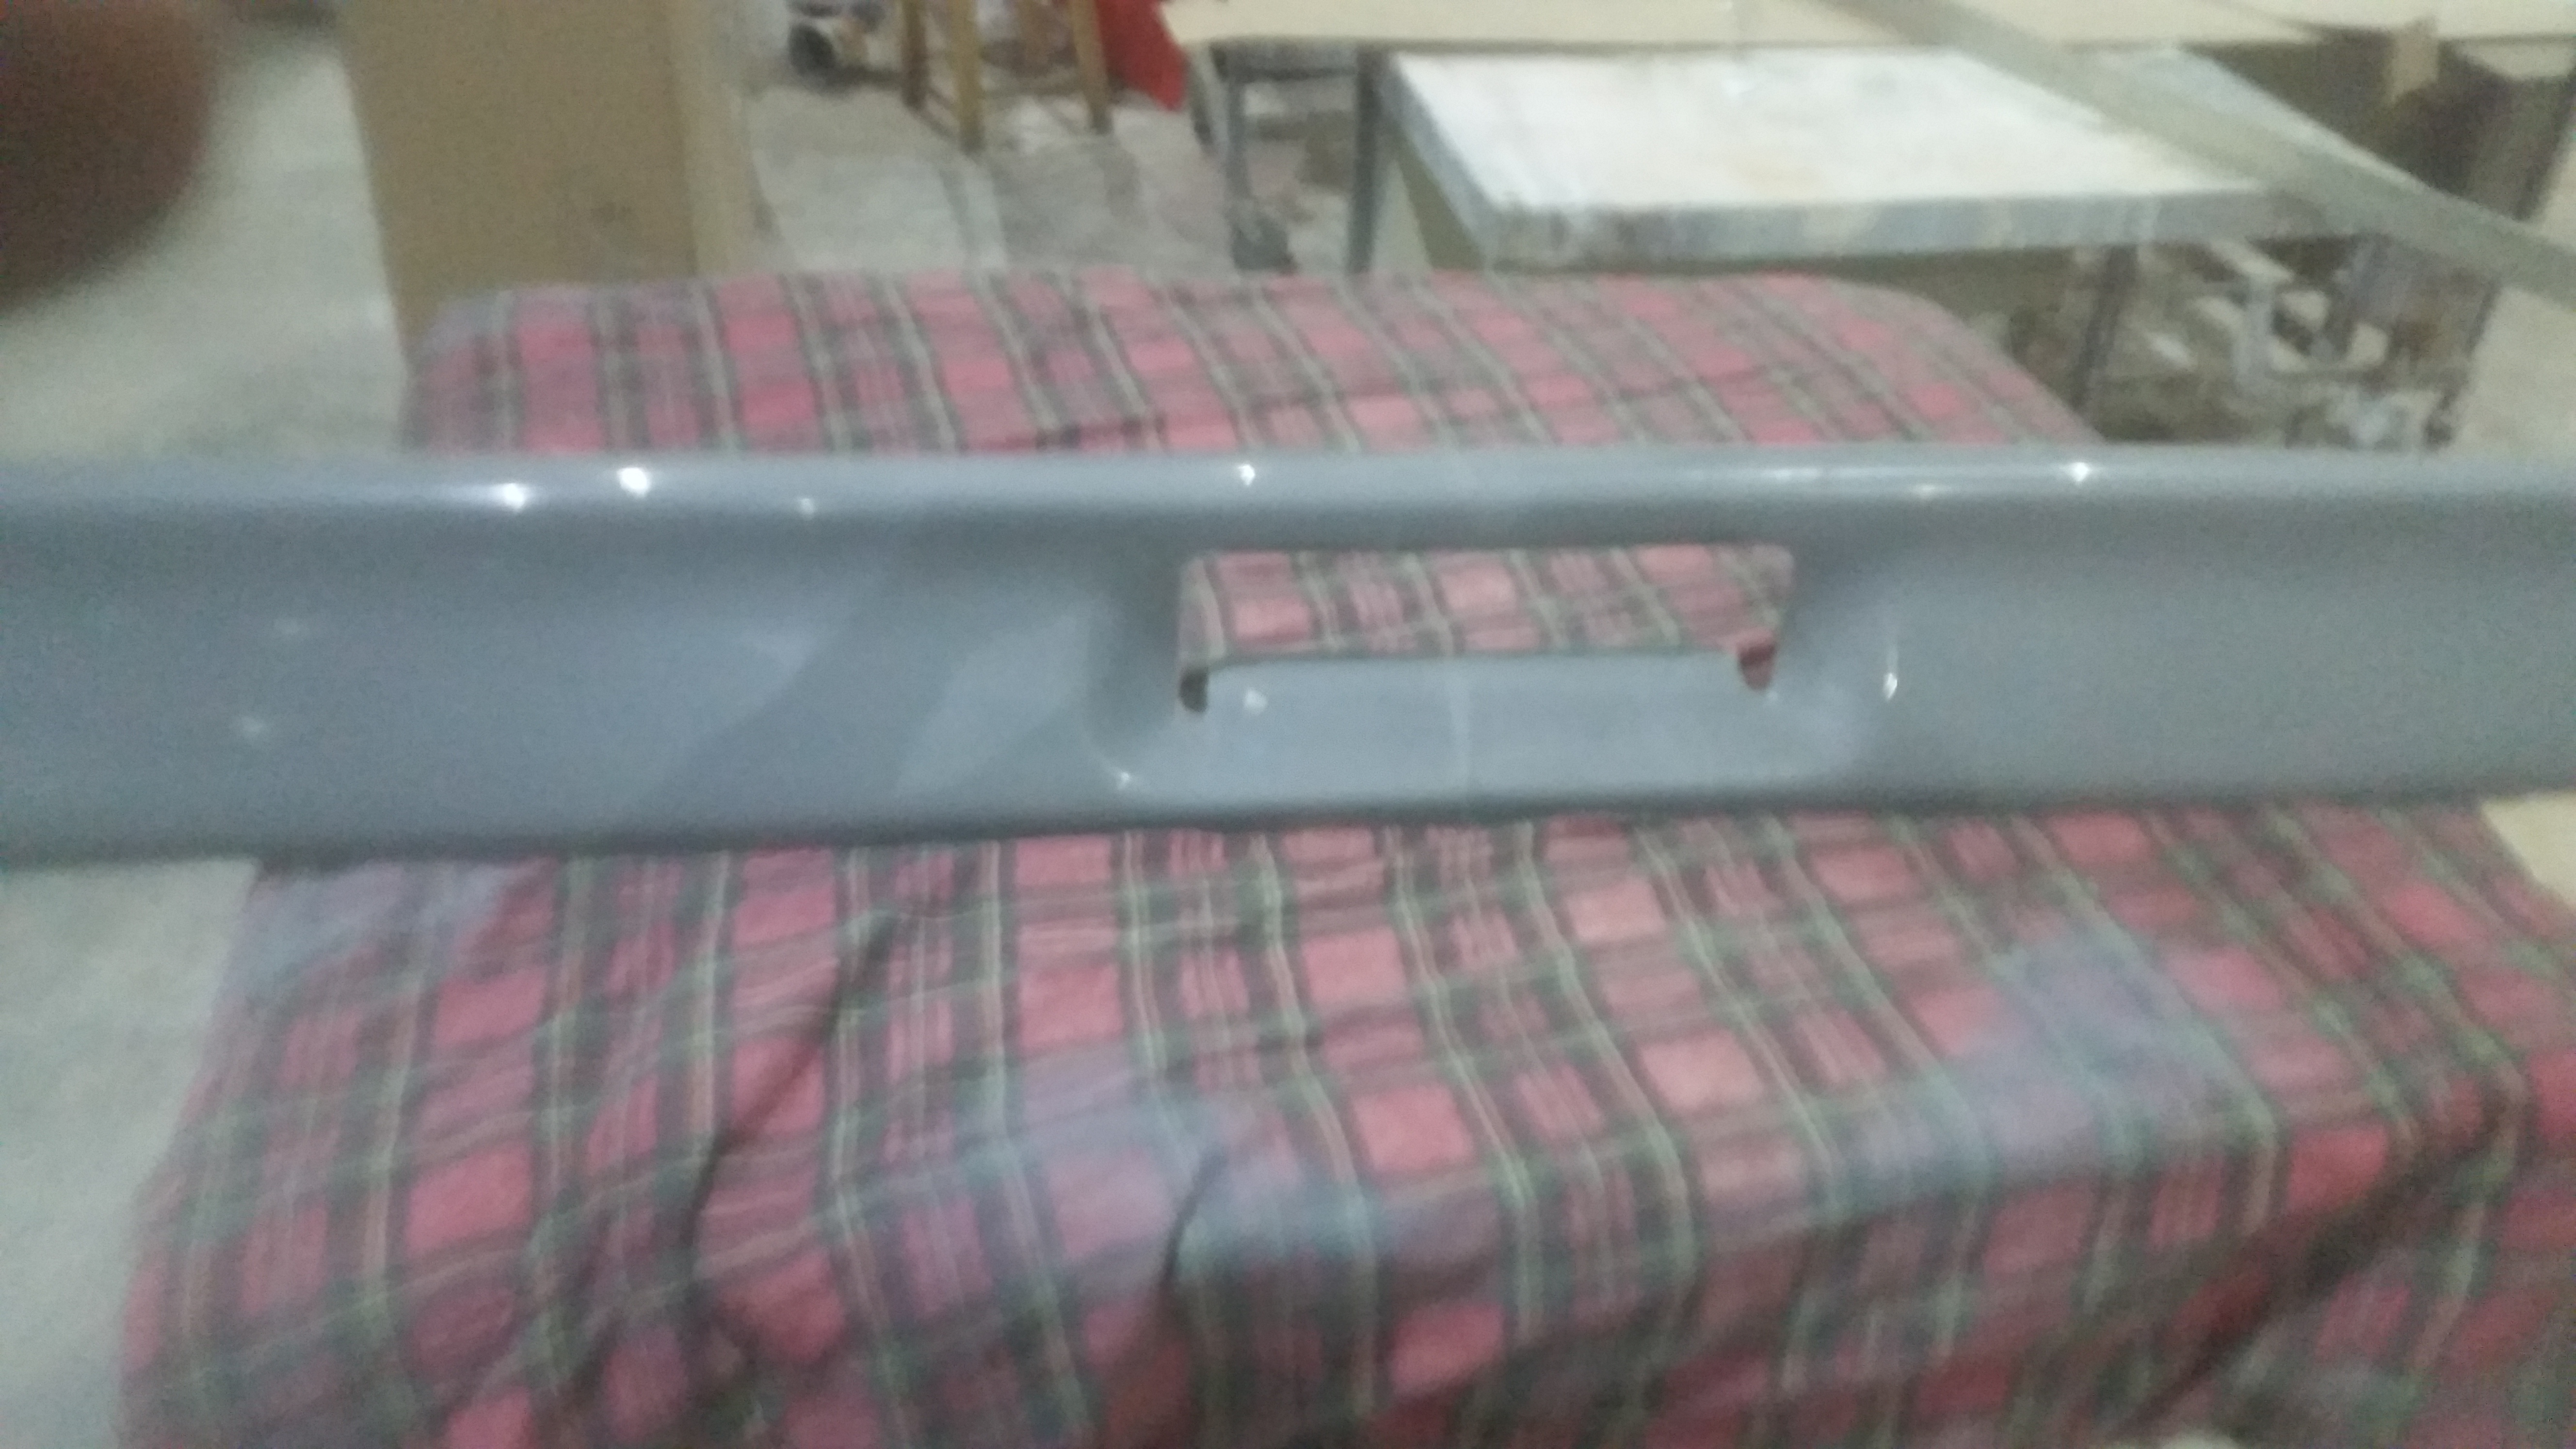 64 Ford Fairlane rear bumper